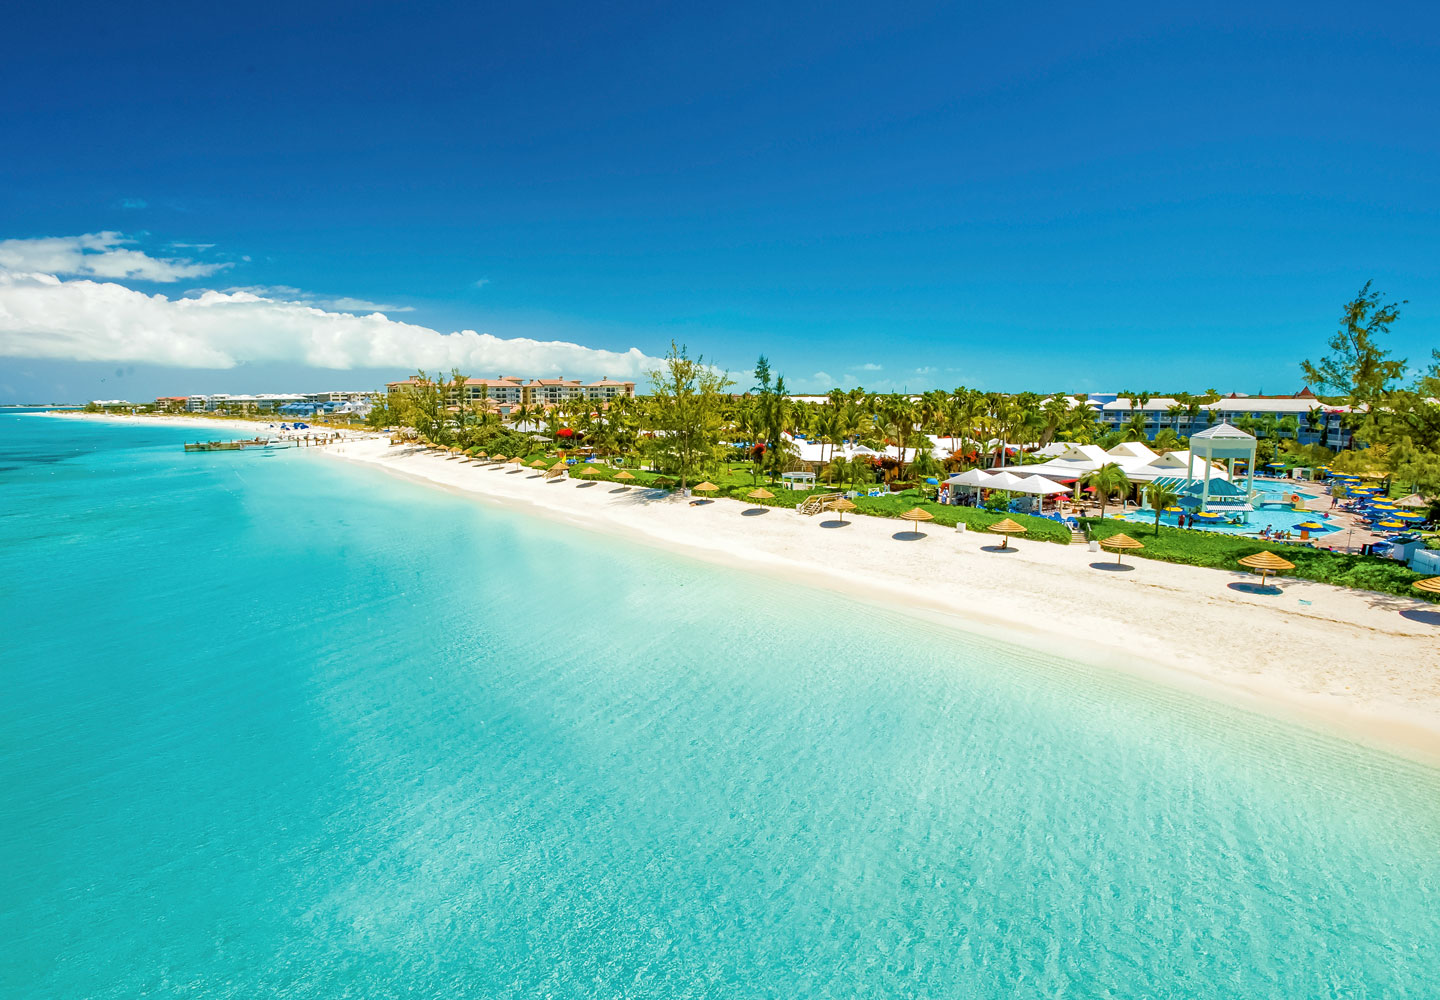 Beaches Turks & Caicos Resort Villages & Spa | Travel By Bob